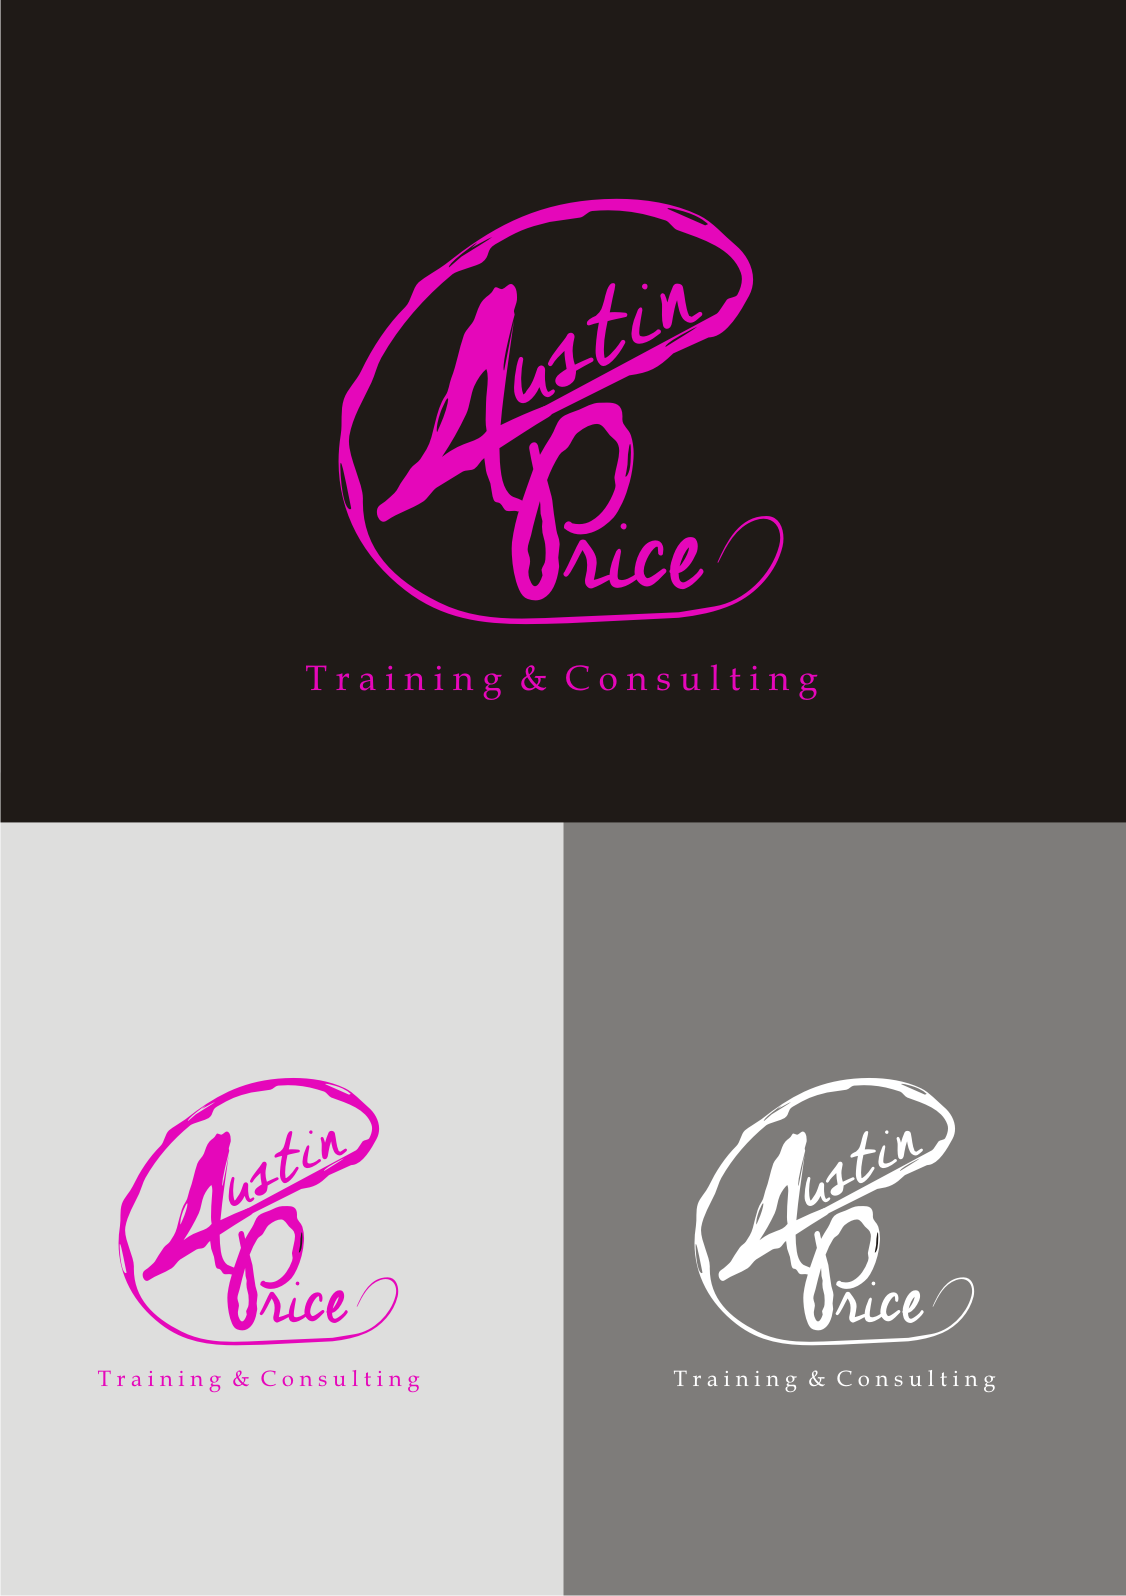 Logo Design by Nthus Nthis - Entry No. 136 in the Logo Design Contest Artistic Logo Design for Austin Price Advisory.